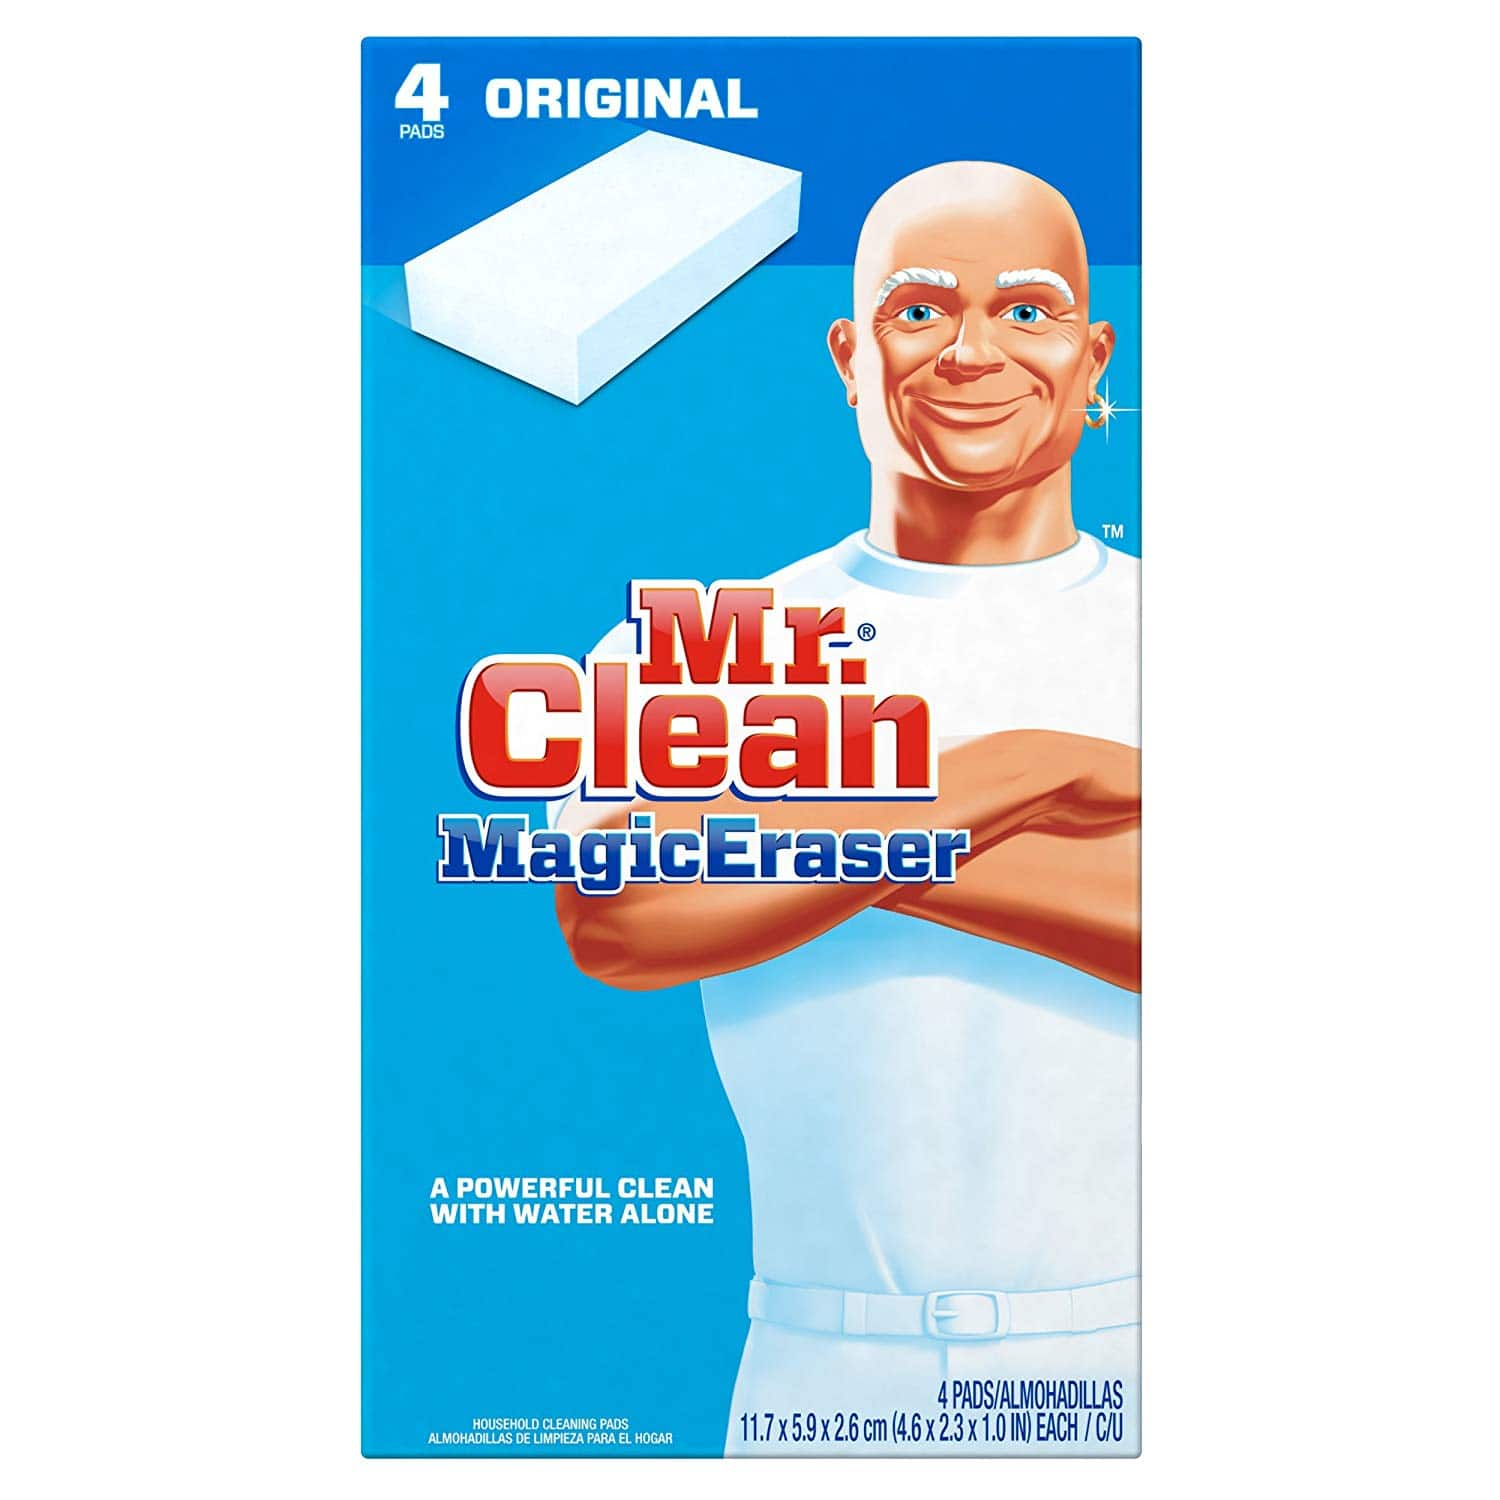 Mr. Clean Magic Eraser Multi-Surface Cleaner, Original, 4 Count $2.50 + free shipping with prime (temp backordered)